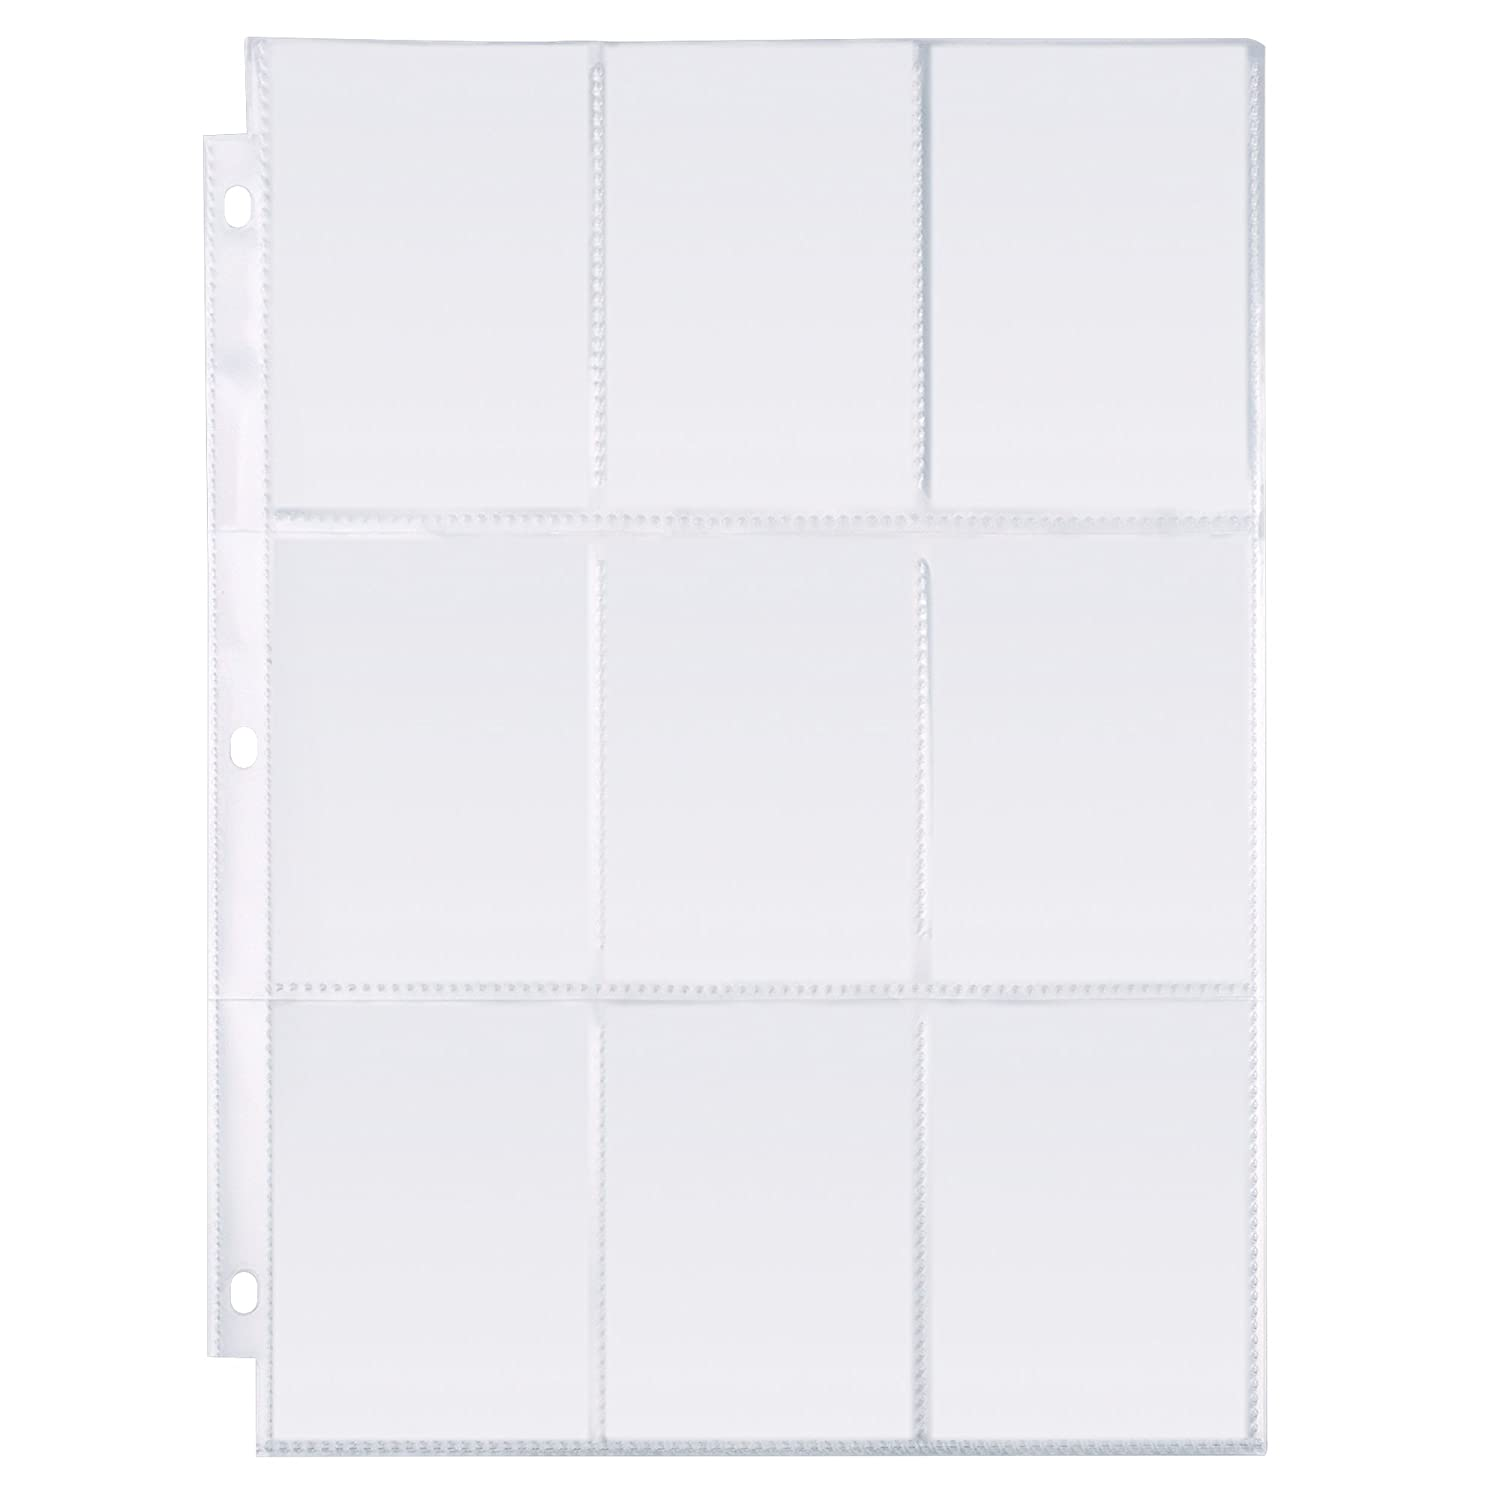 MaxGear 9 Pocket Pages Protectors Trading Card Pages Sleeves Coupon Pages for 3 Ring Binder Card Sheets for Trading Cards, Sport Cards, Game Cards, Business Cards, 30 Pages